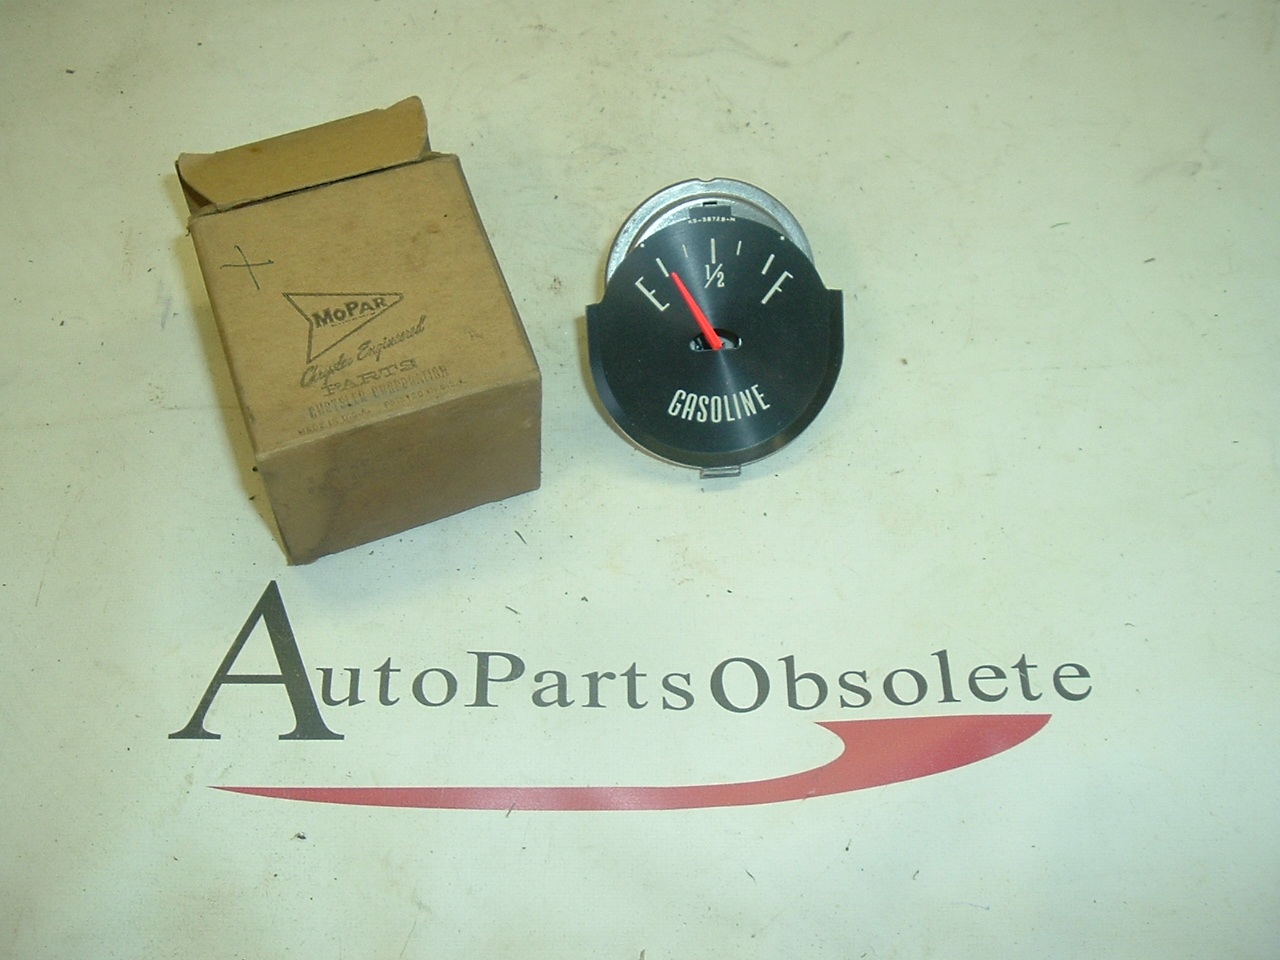 1962 Plymouth Fuel gauge nos 2257205 (a 2257205)